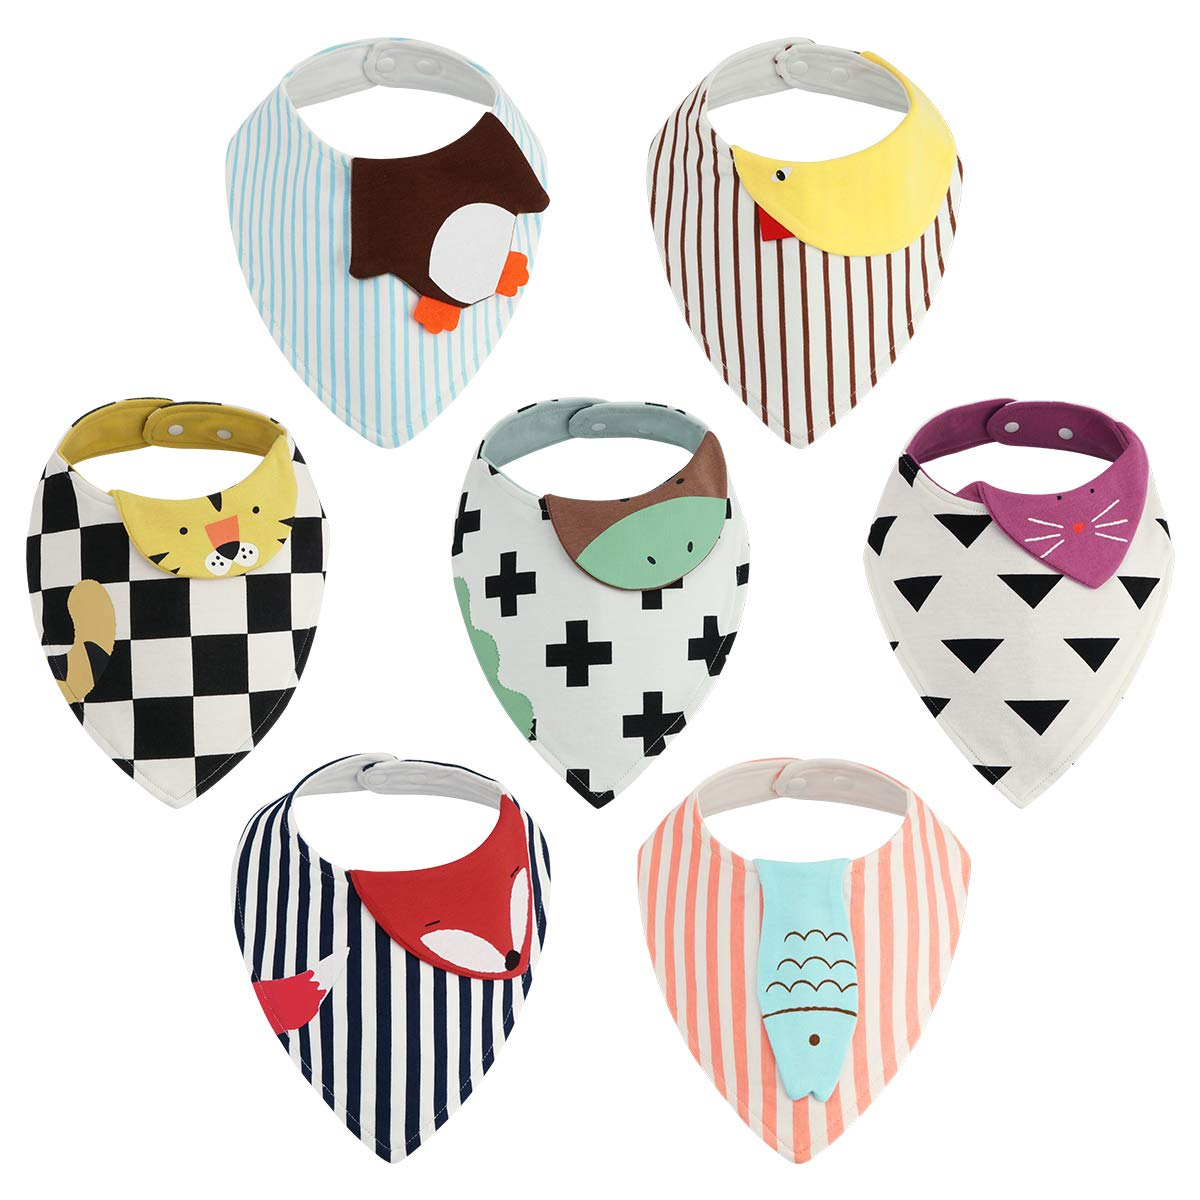 Baby Bandana Drool Bibs - 7 Pack Kirecoo Unisex Baby Bibs for Drooling and Teething, 100% Organic Cotton and Super Absorbent Cartoon Animal Bibs with Storage Bag for Baby Boys, Girls, Baby Shower Gift by Kirecoo